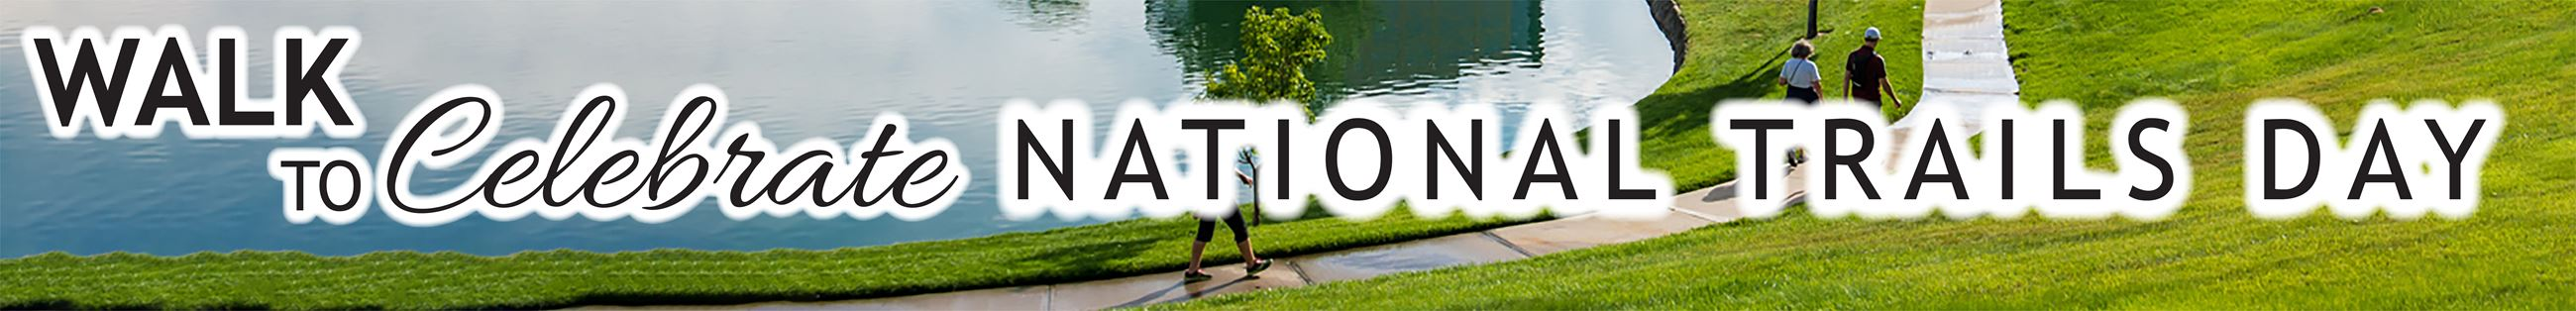 Trails Day graphic header with photo of people walking along green grass and a pond